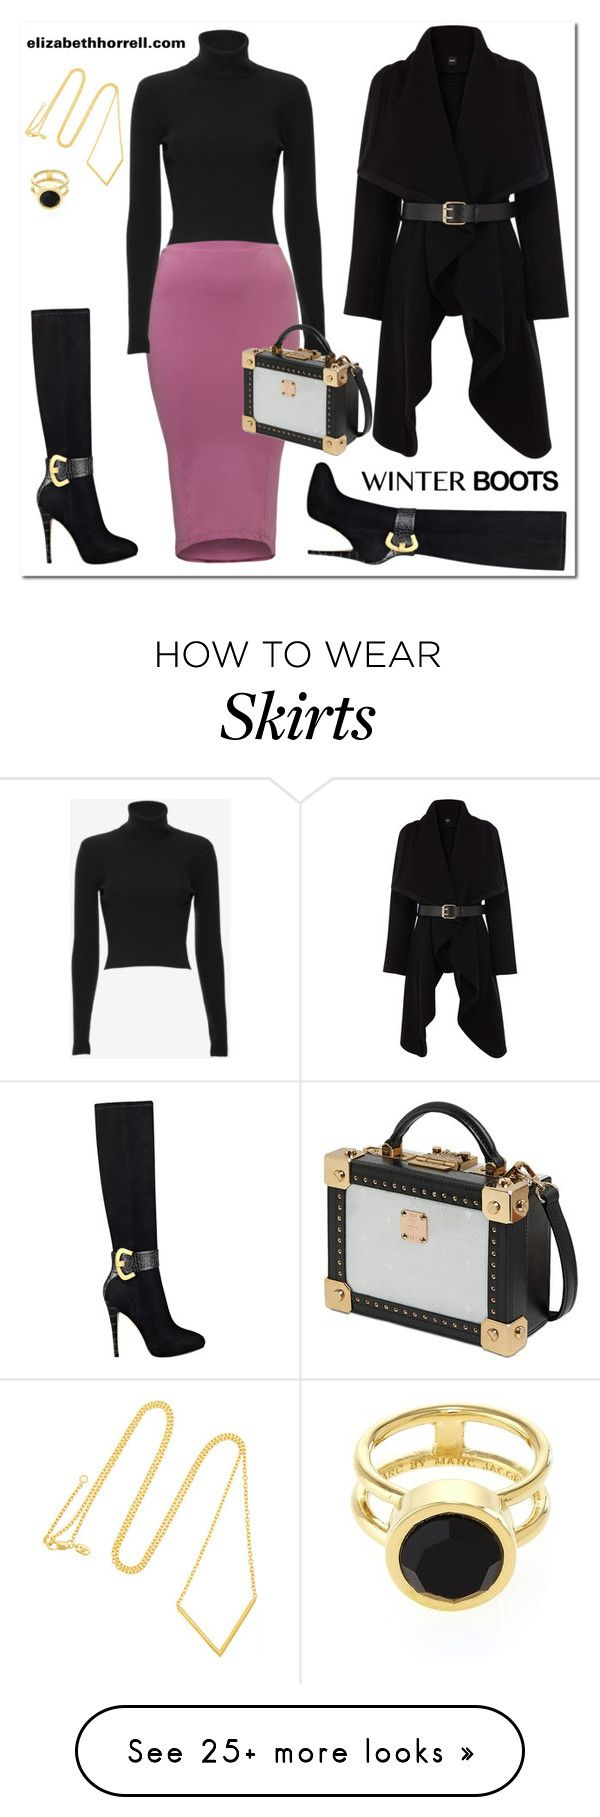 """LIZ"" by elizabethhorrell on Polyvore featuring GUESS, A.L.C., Oasis, MCM, Maria Black and Marc by Marc Jacobs"